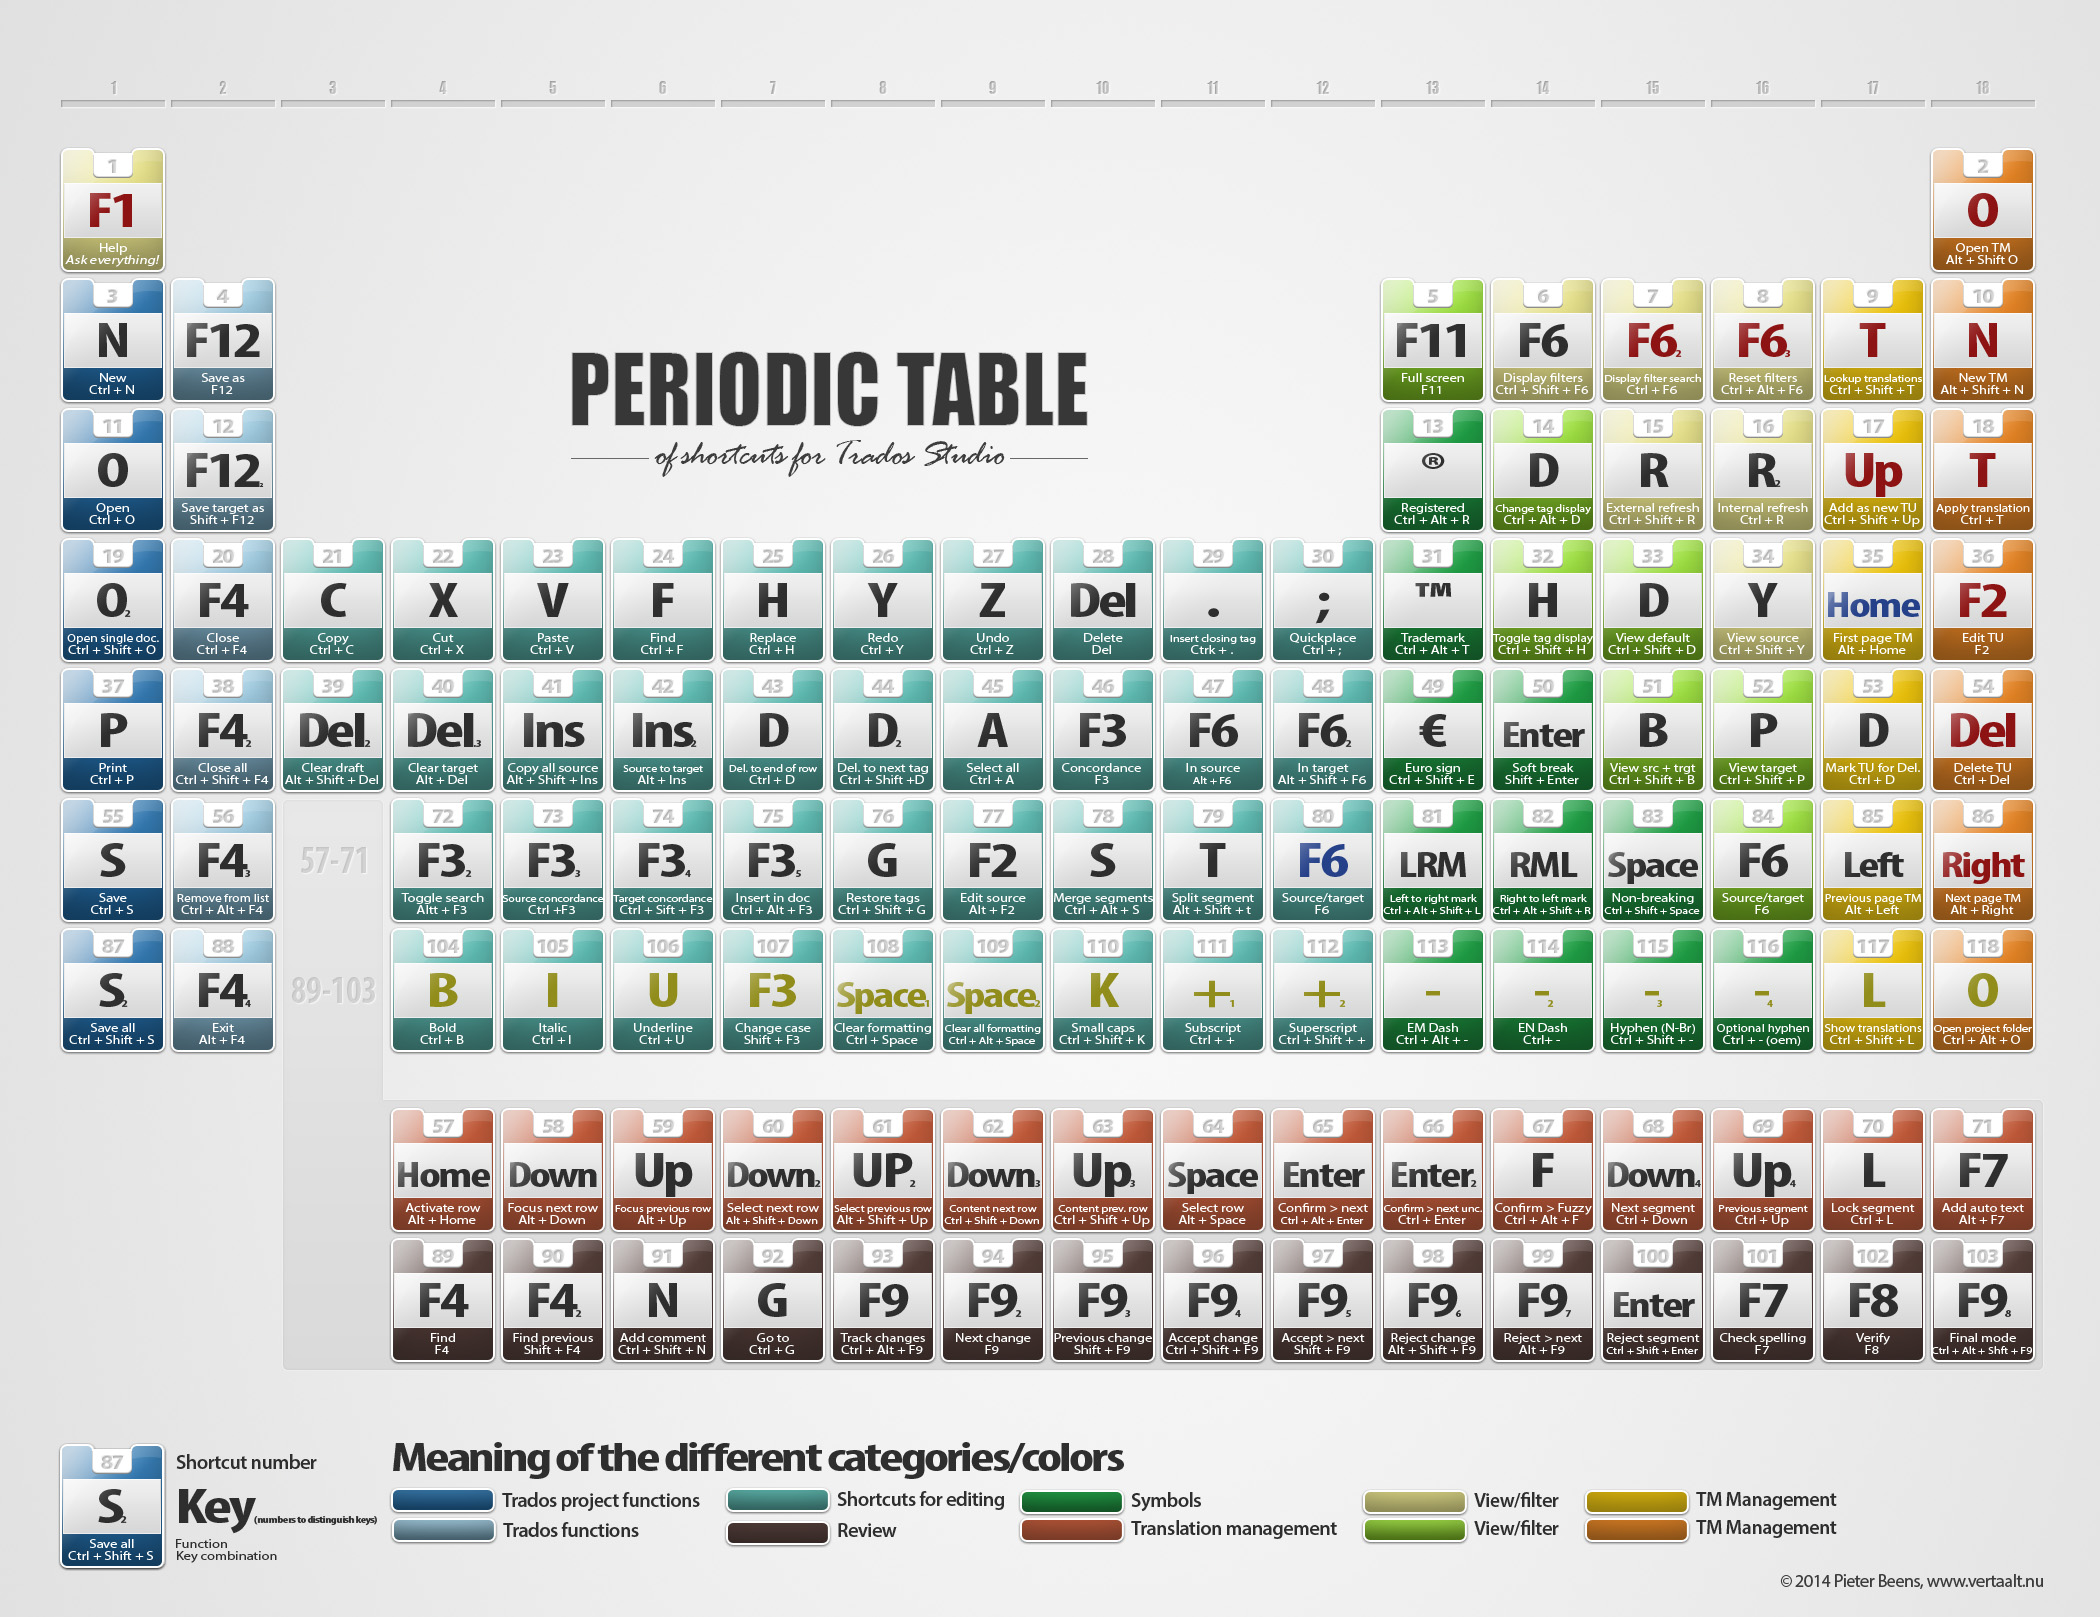 The periodic table of trados shortcuts trados studios 20112014 download the periodic table urtaz Images